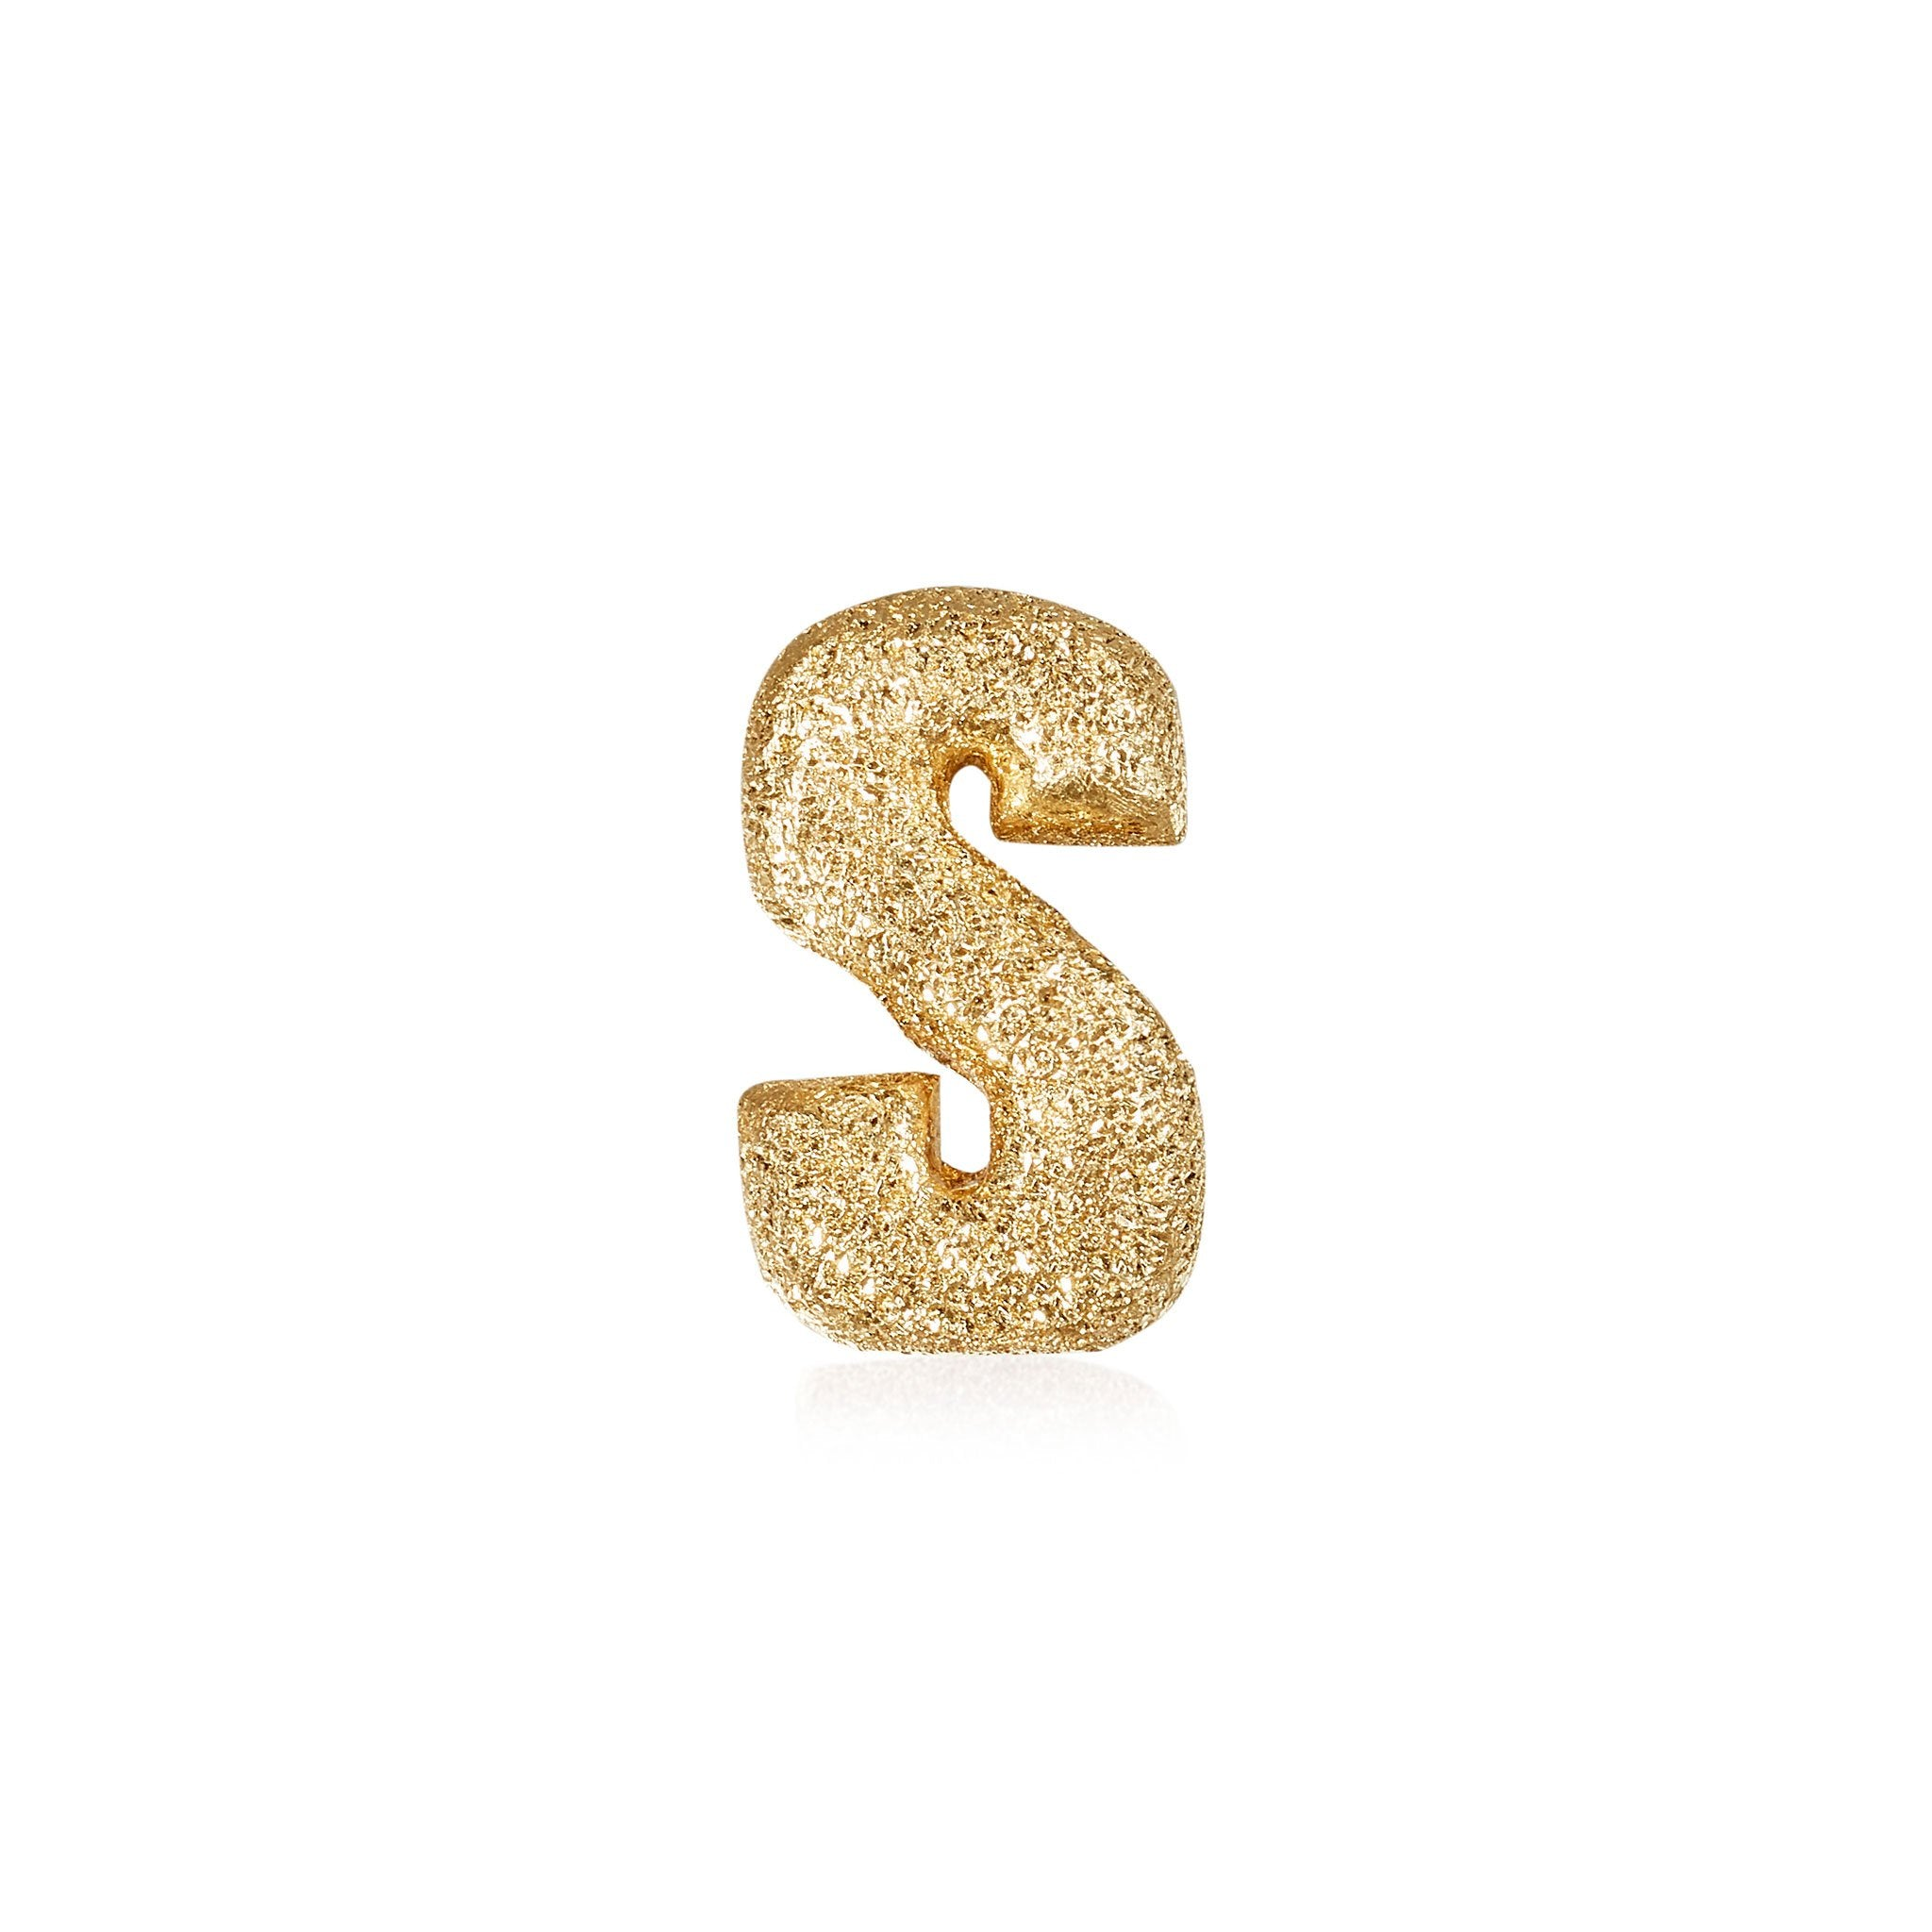 FORTE Florentine Finish Letter S - 18k Yellow Gold